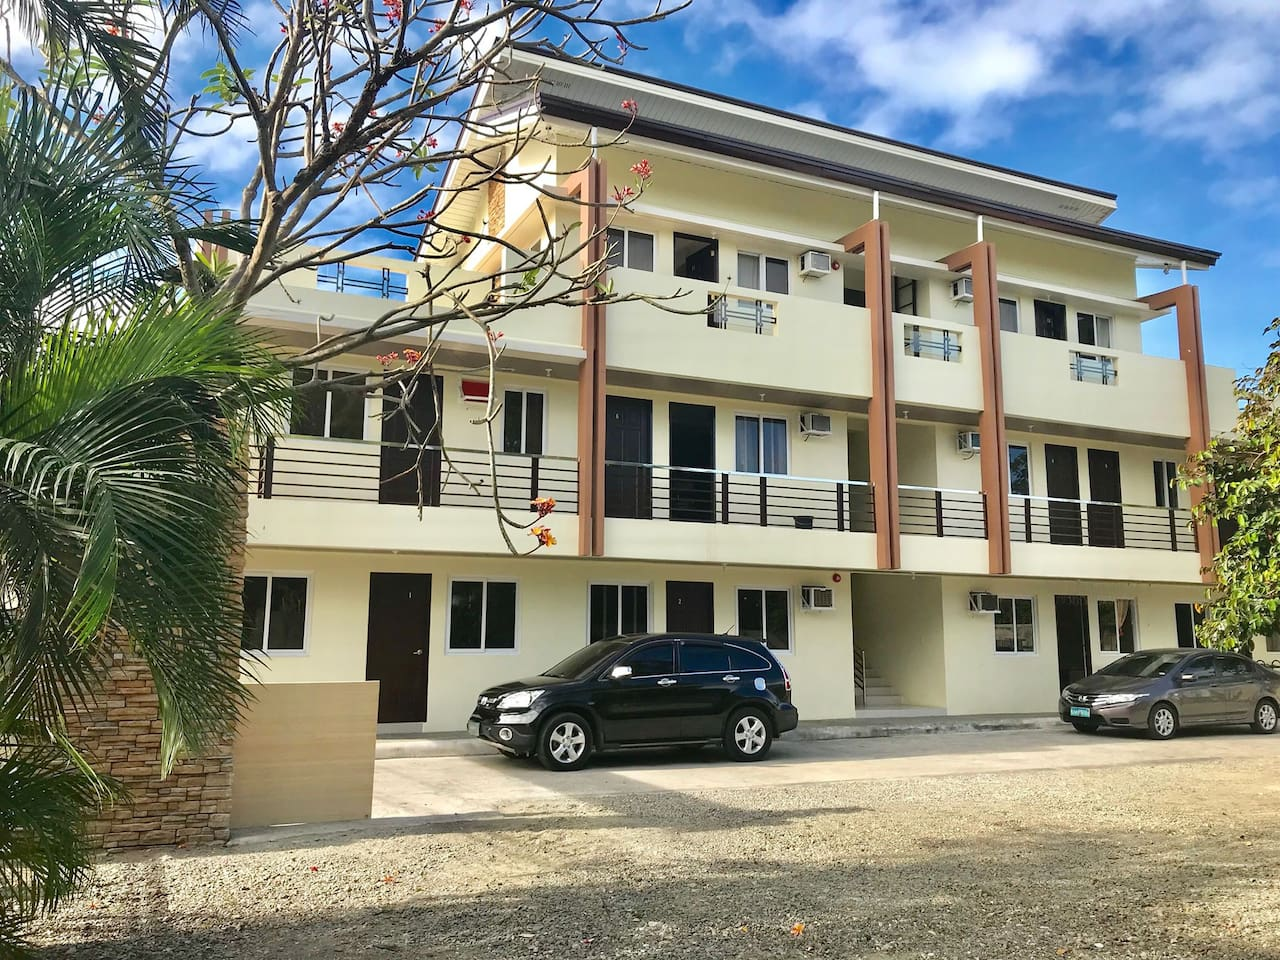 This 2 bedroom unit is located on the 1st floor, door closest to the street.